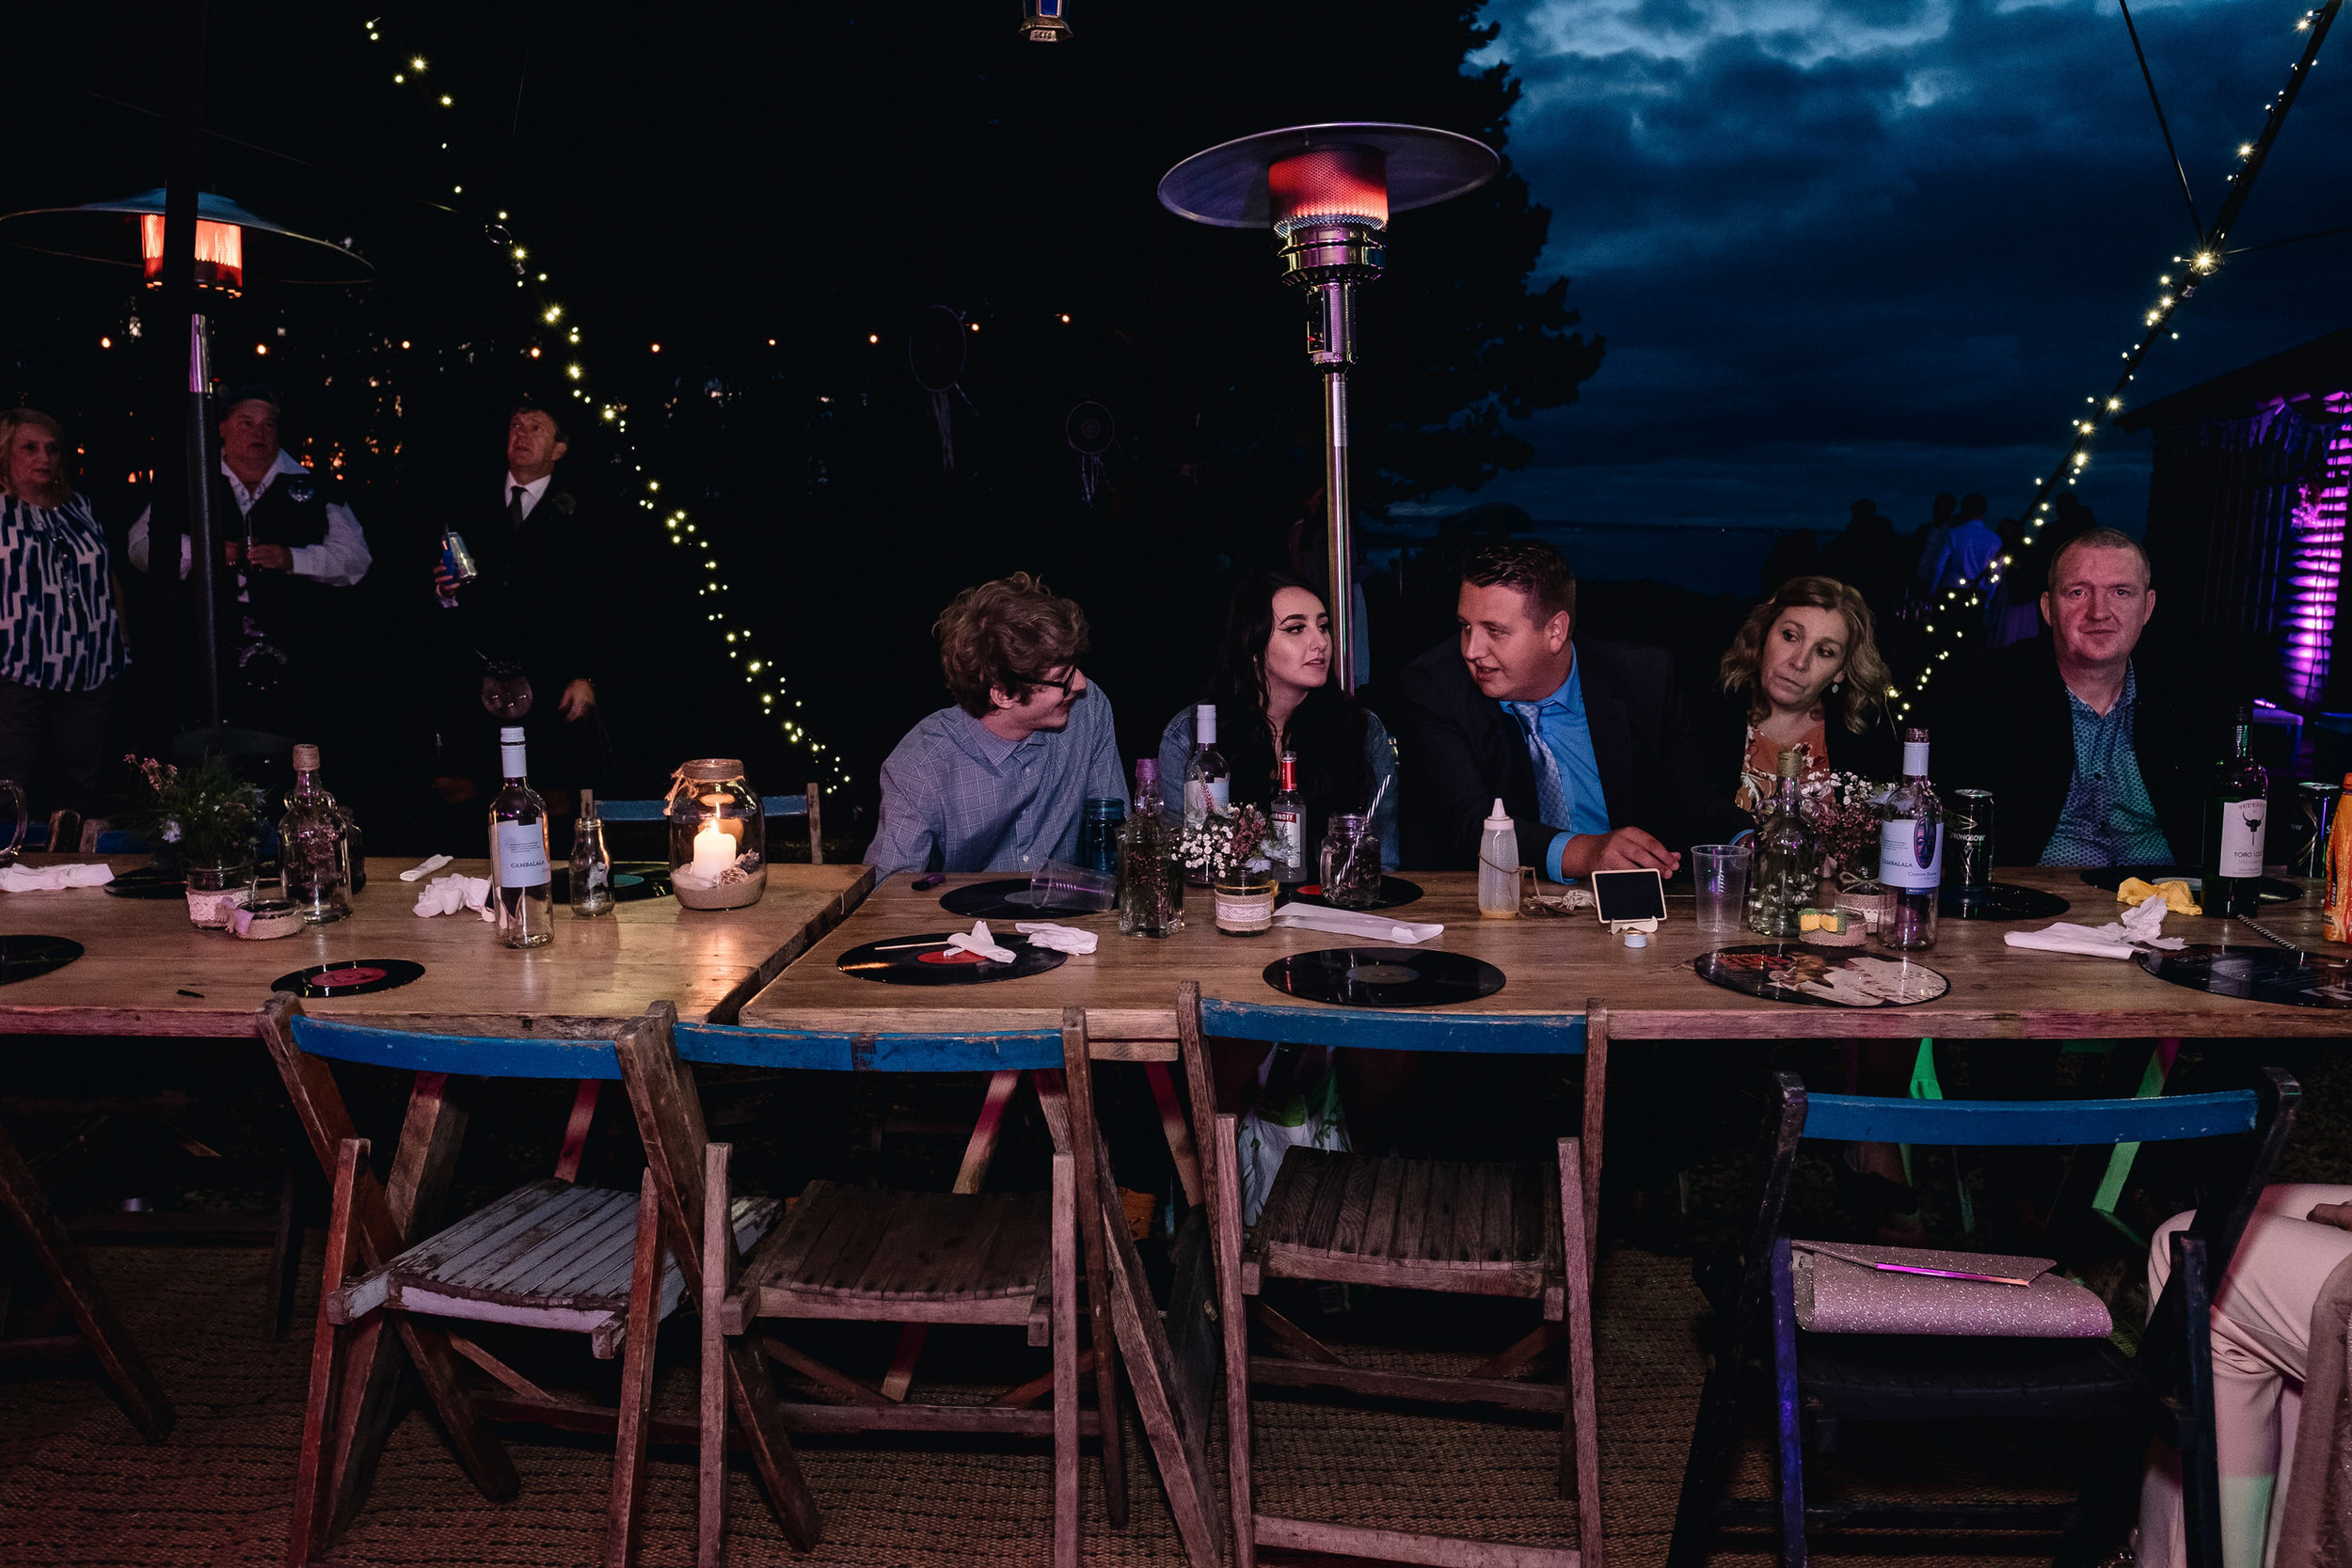 Guests sitting at table at night.